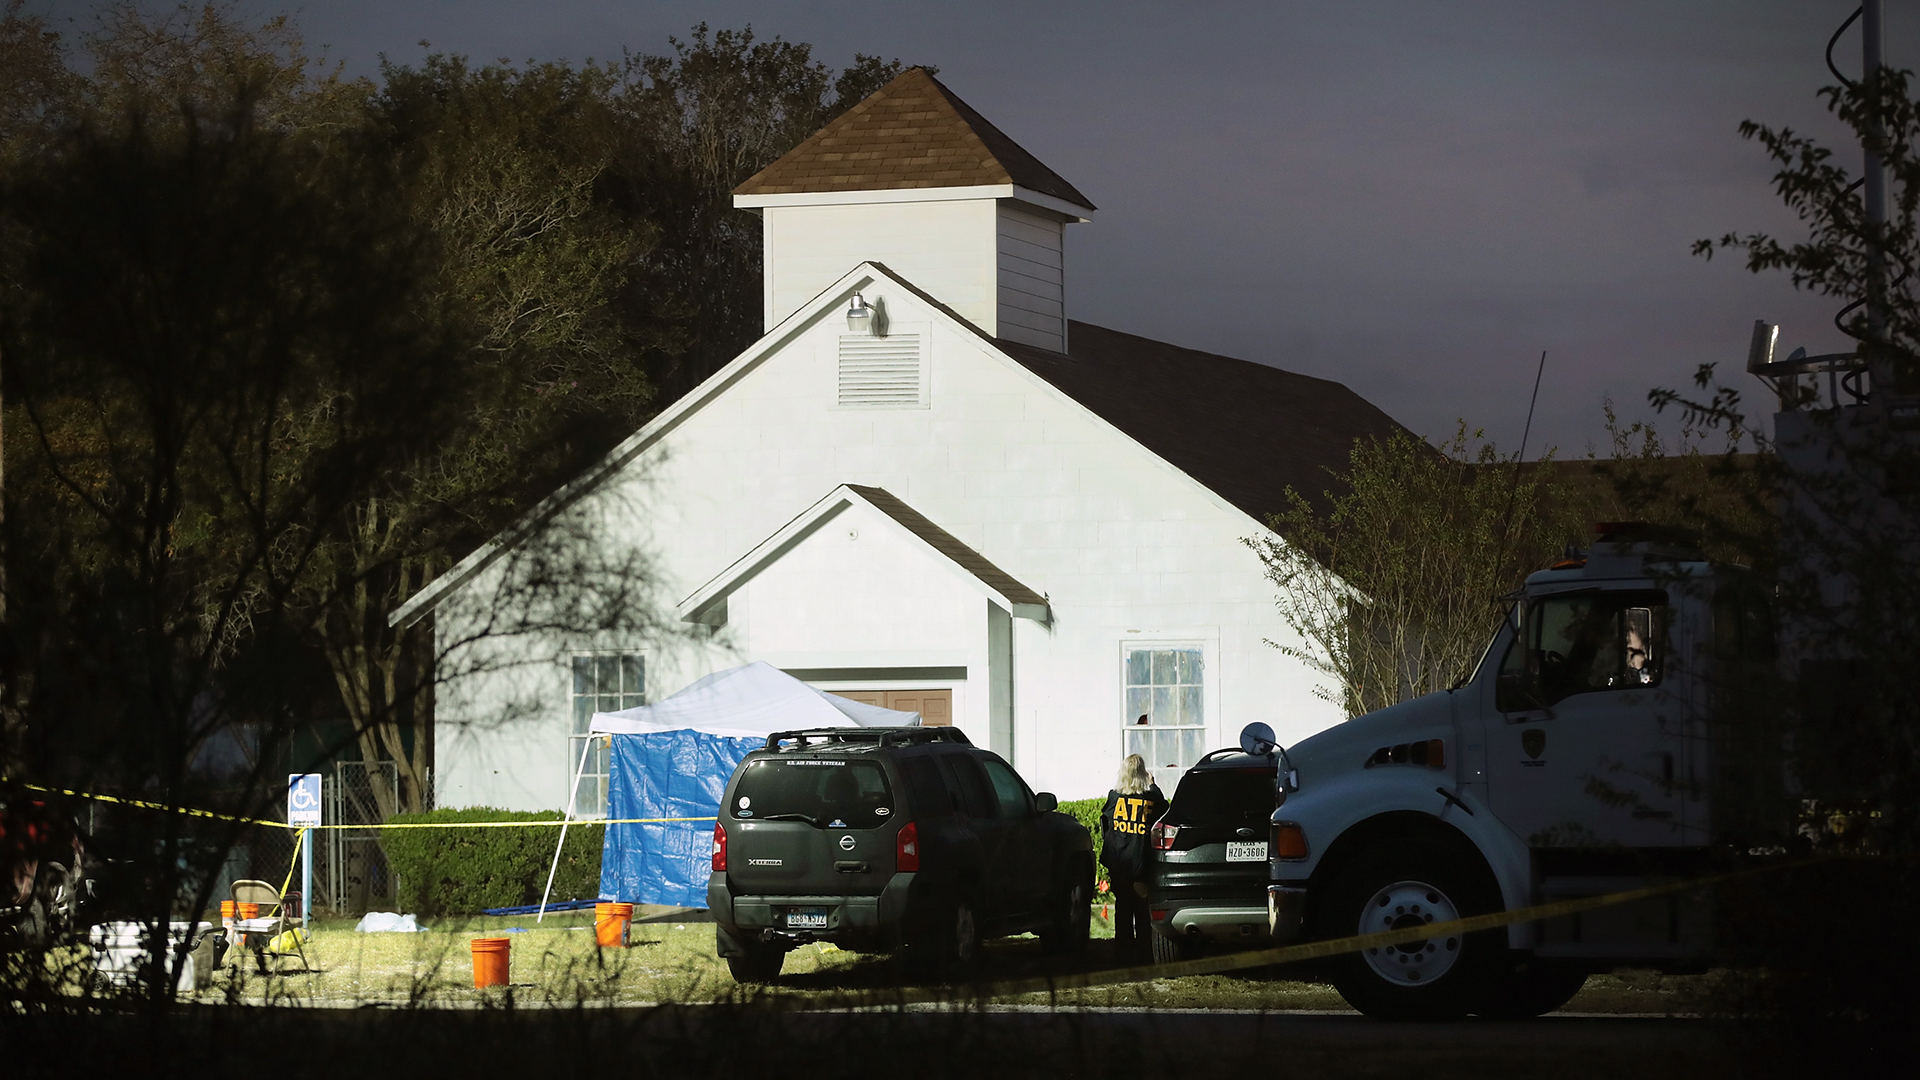 Texas Church Shooting First Baptist Church crime scene-159532.jpg87328718